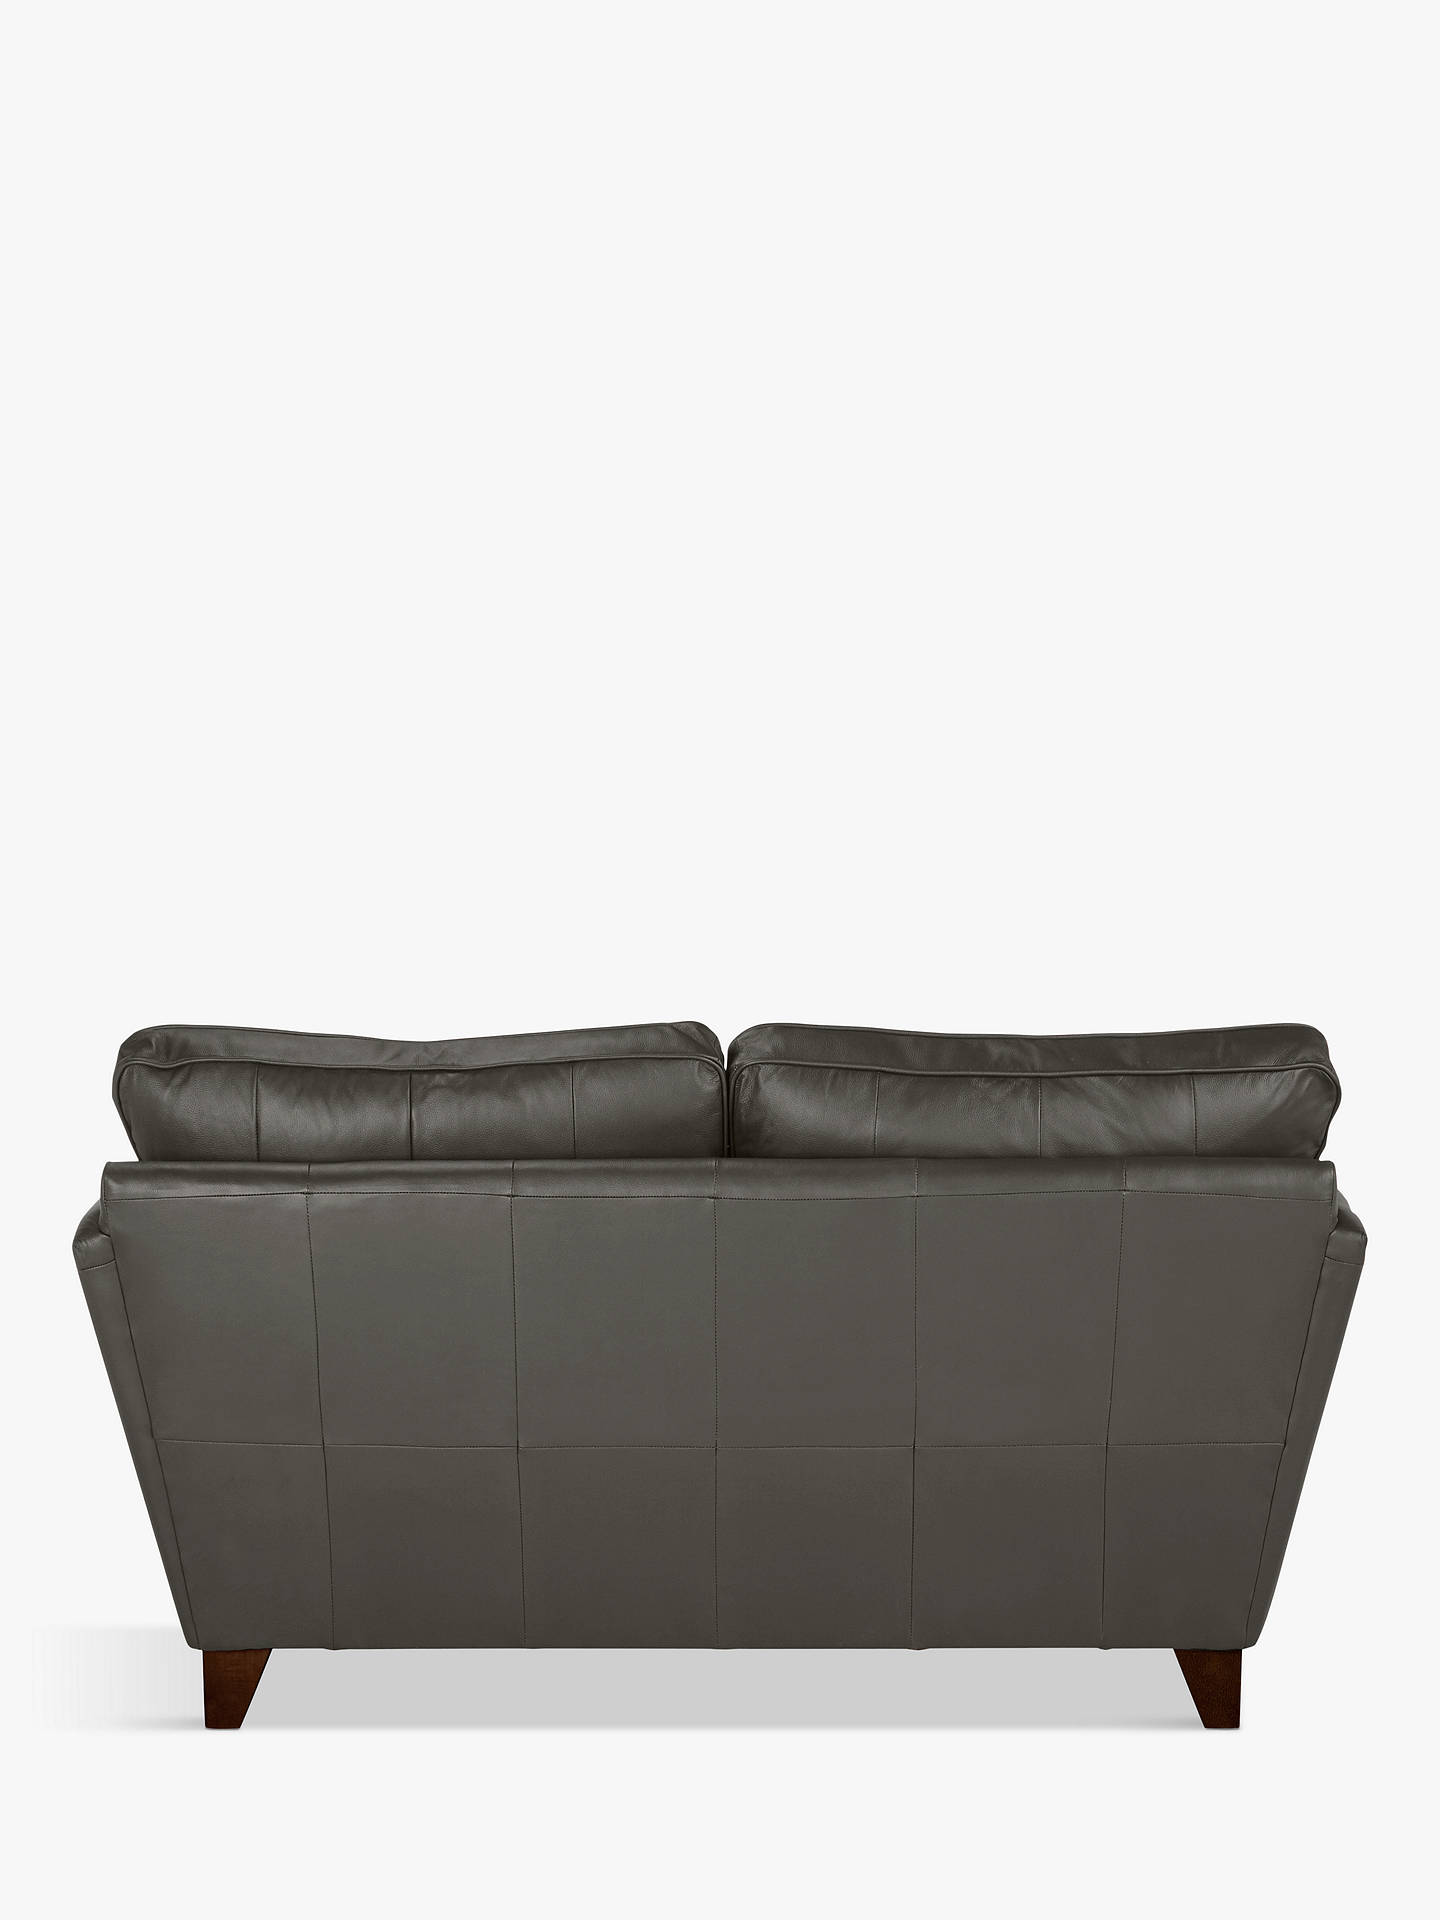 Buy John Lewis & Partners Oslo Leather Small 2 Seater Sofa, Dark Leg, Winchester Anthracite Online at johnlewis.com